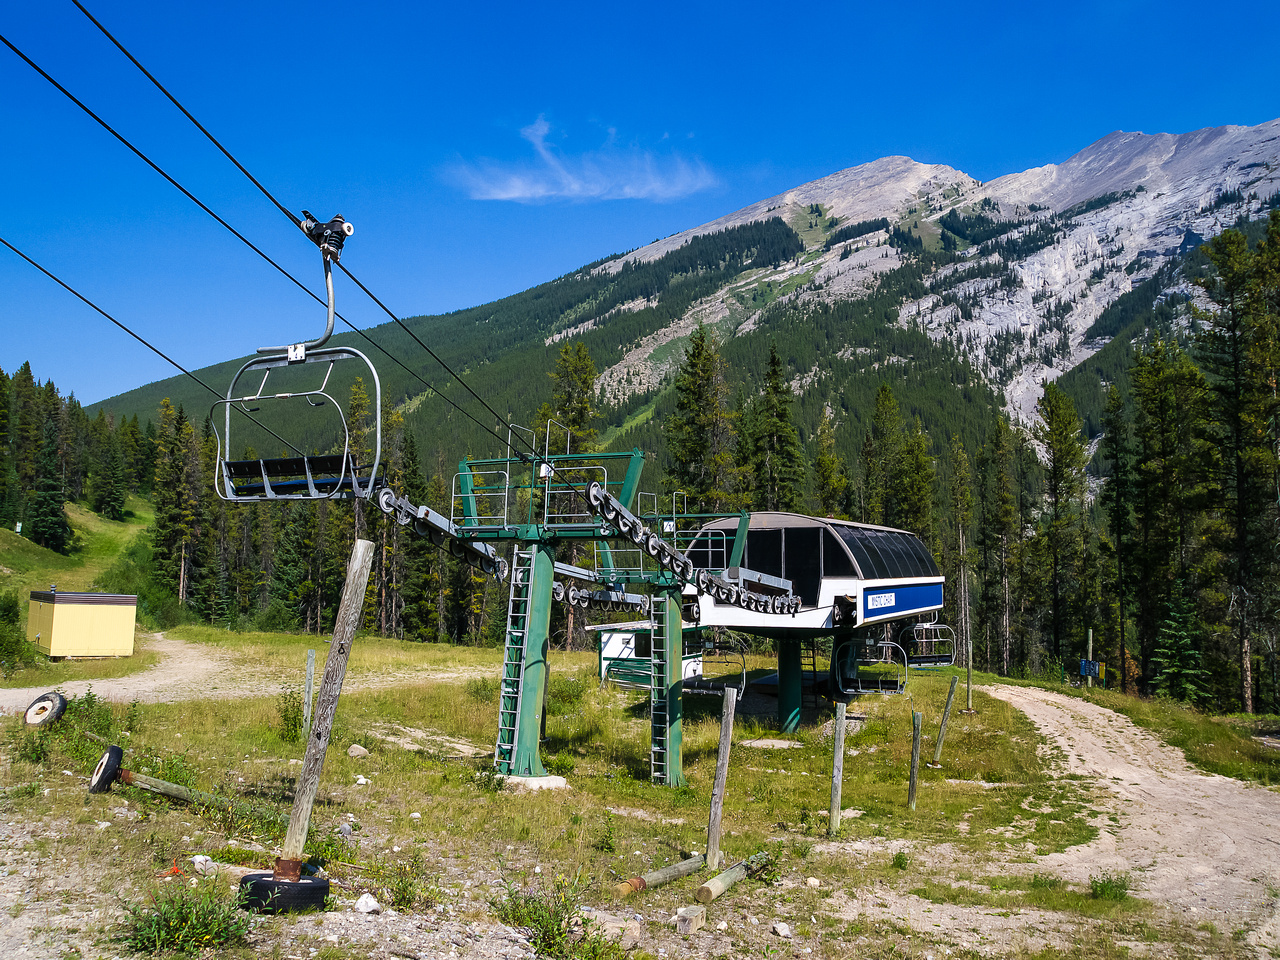 View from the Norquay chair towards Cascade.